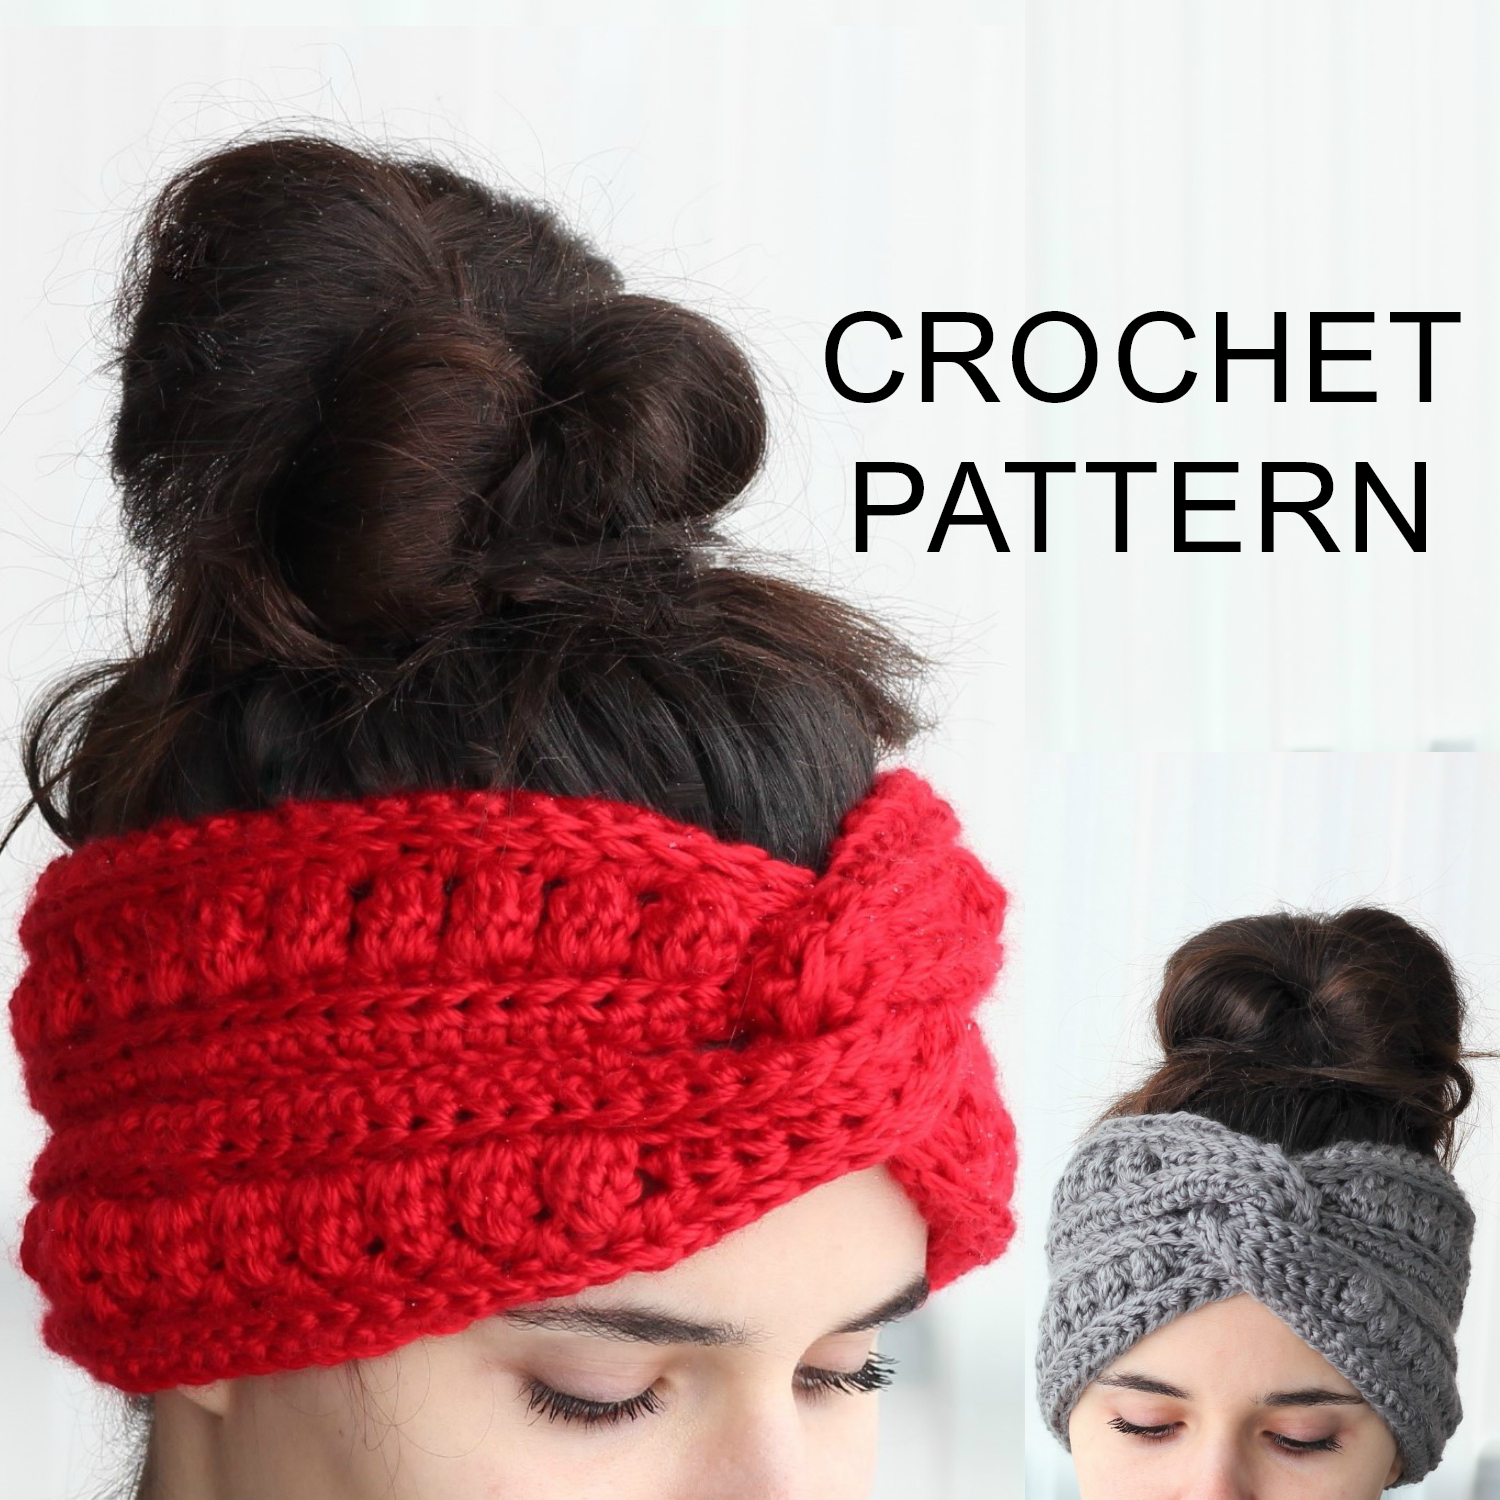 Knitted Headband With Flower Pattern Aura Headband Ear Warmer Crochet Pattern Pdf